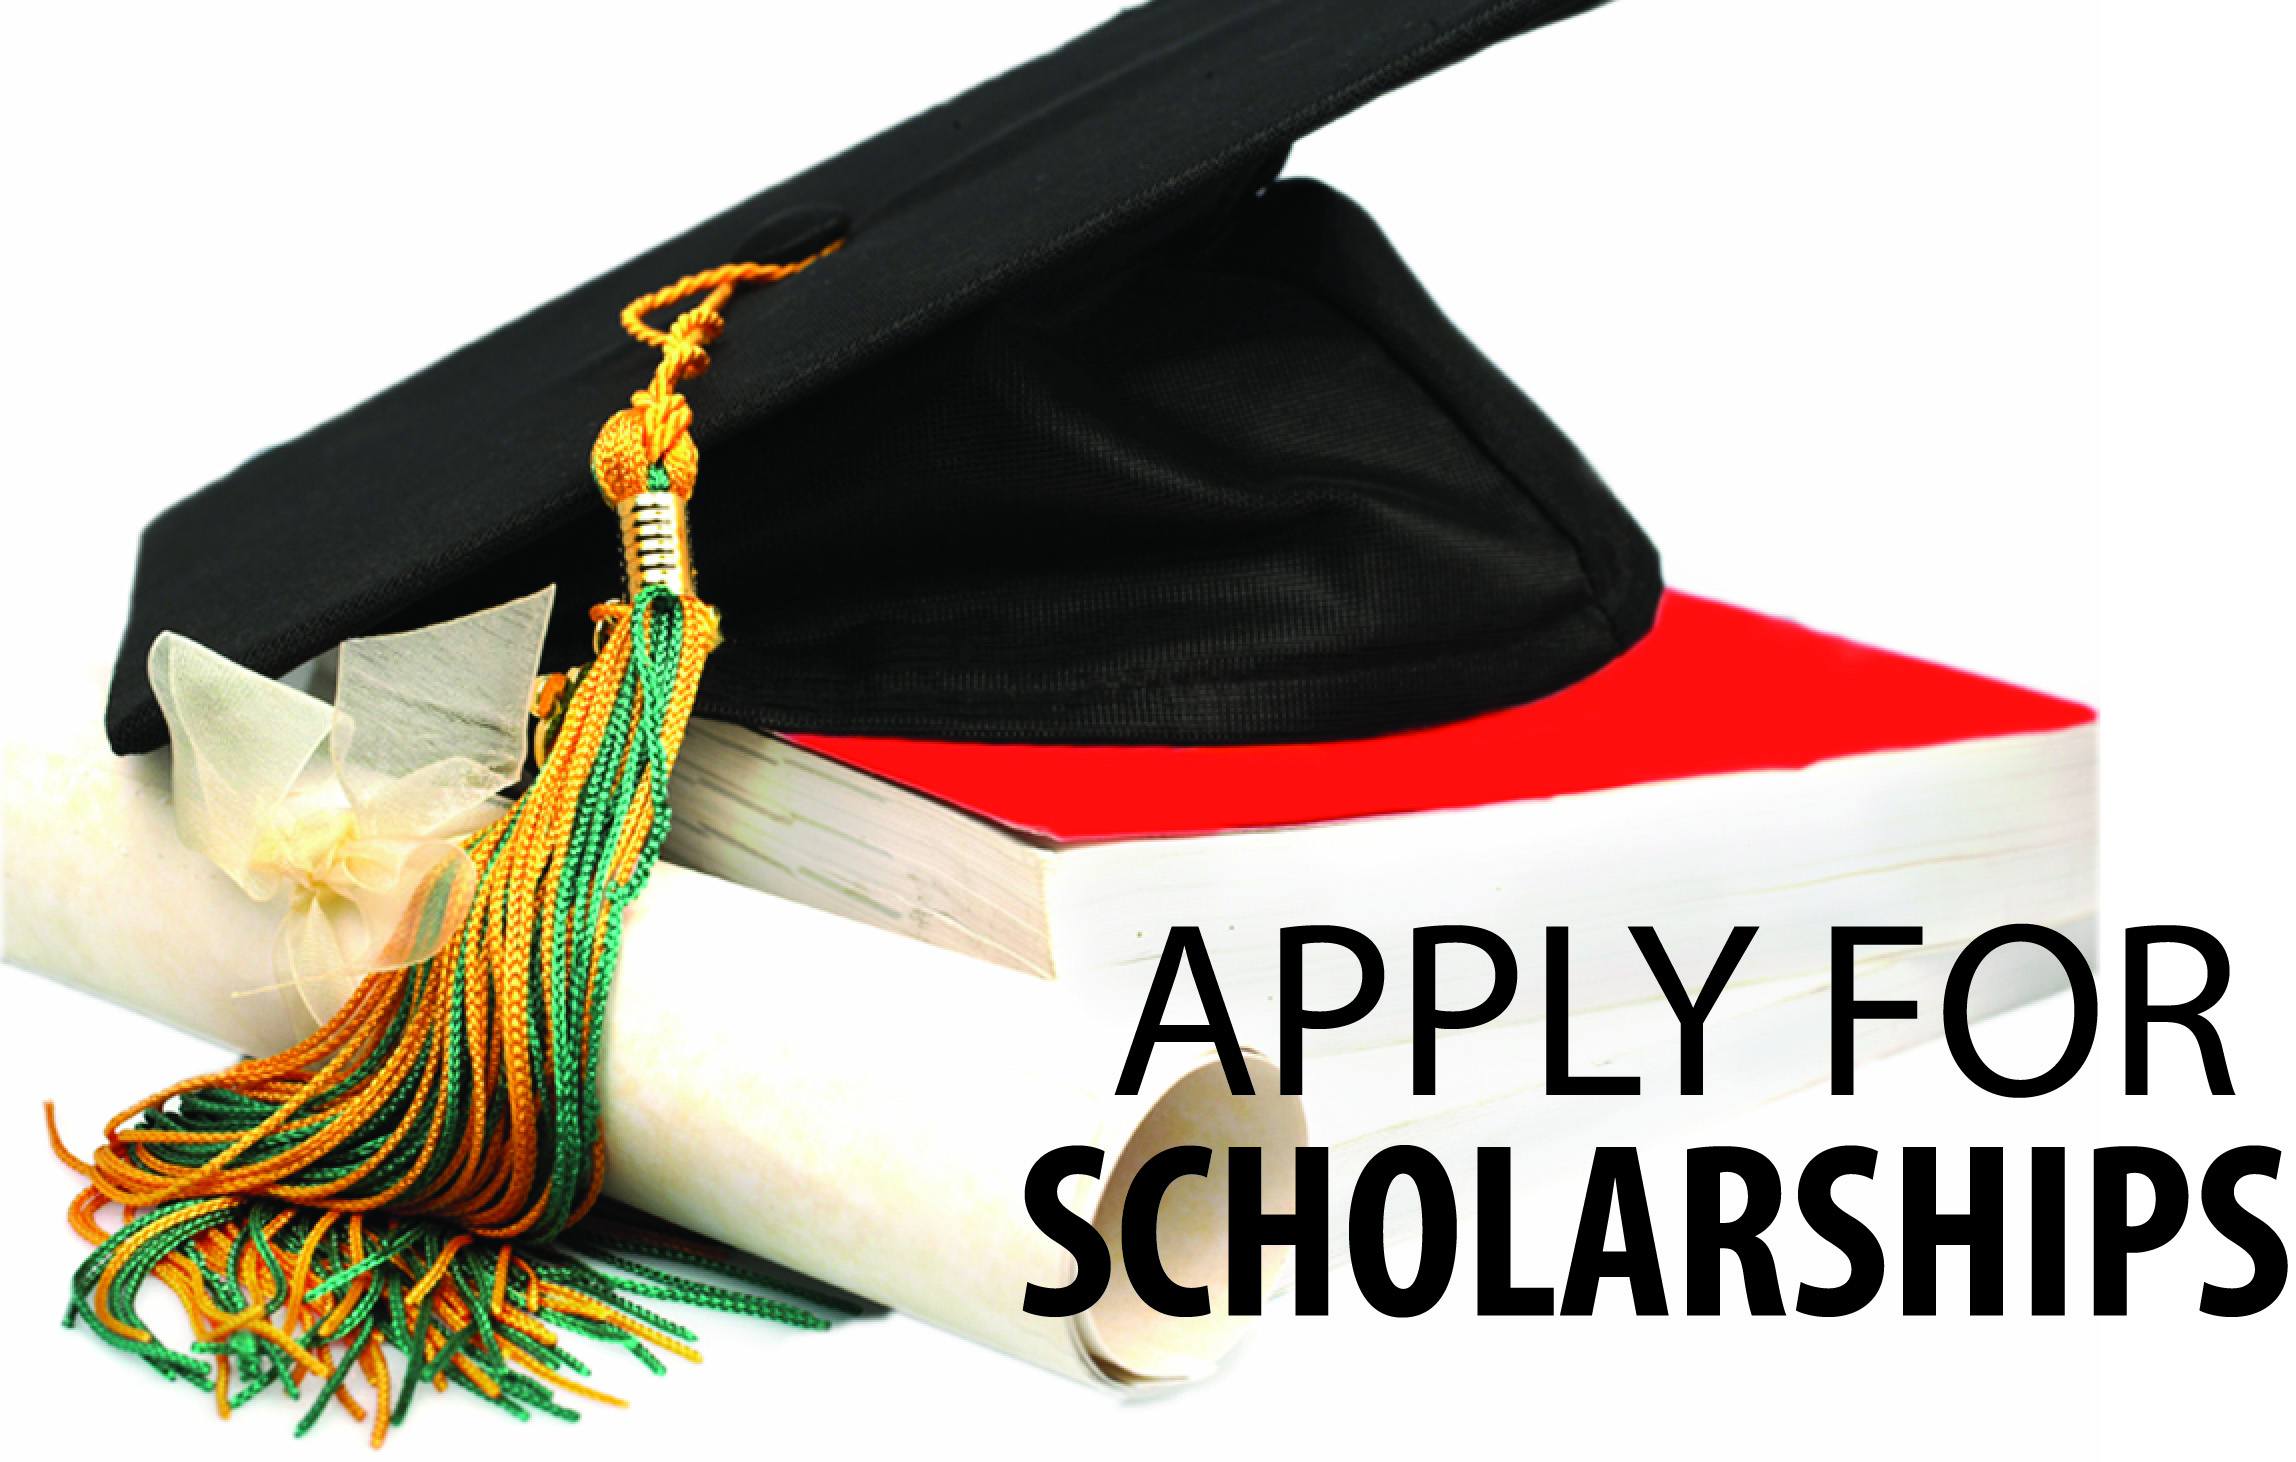 APPLICATIONS OPEN FOR UNCOMMON FRIENDS FOUNDATION SCHOLARSHIPS